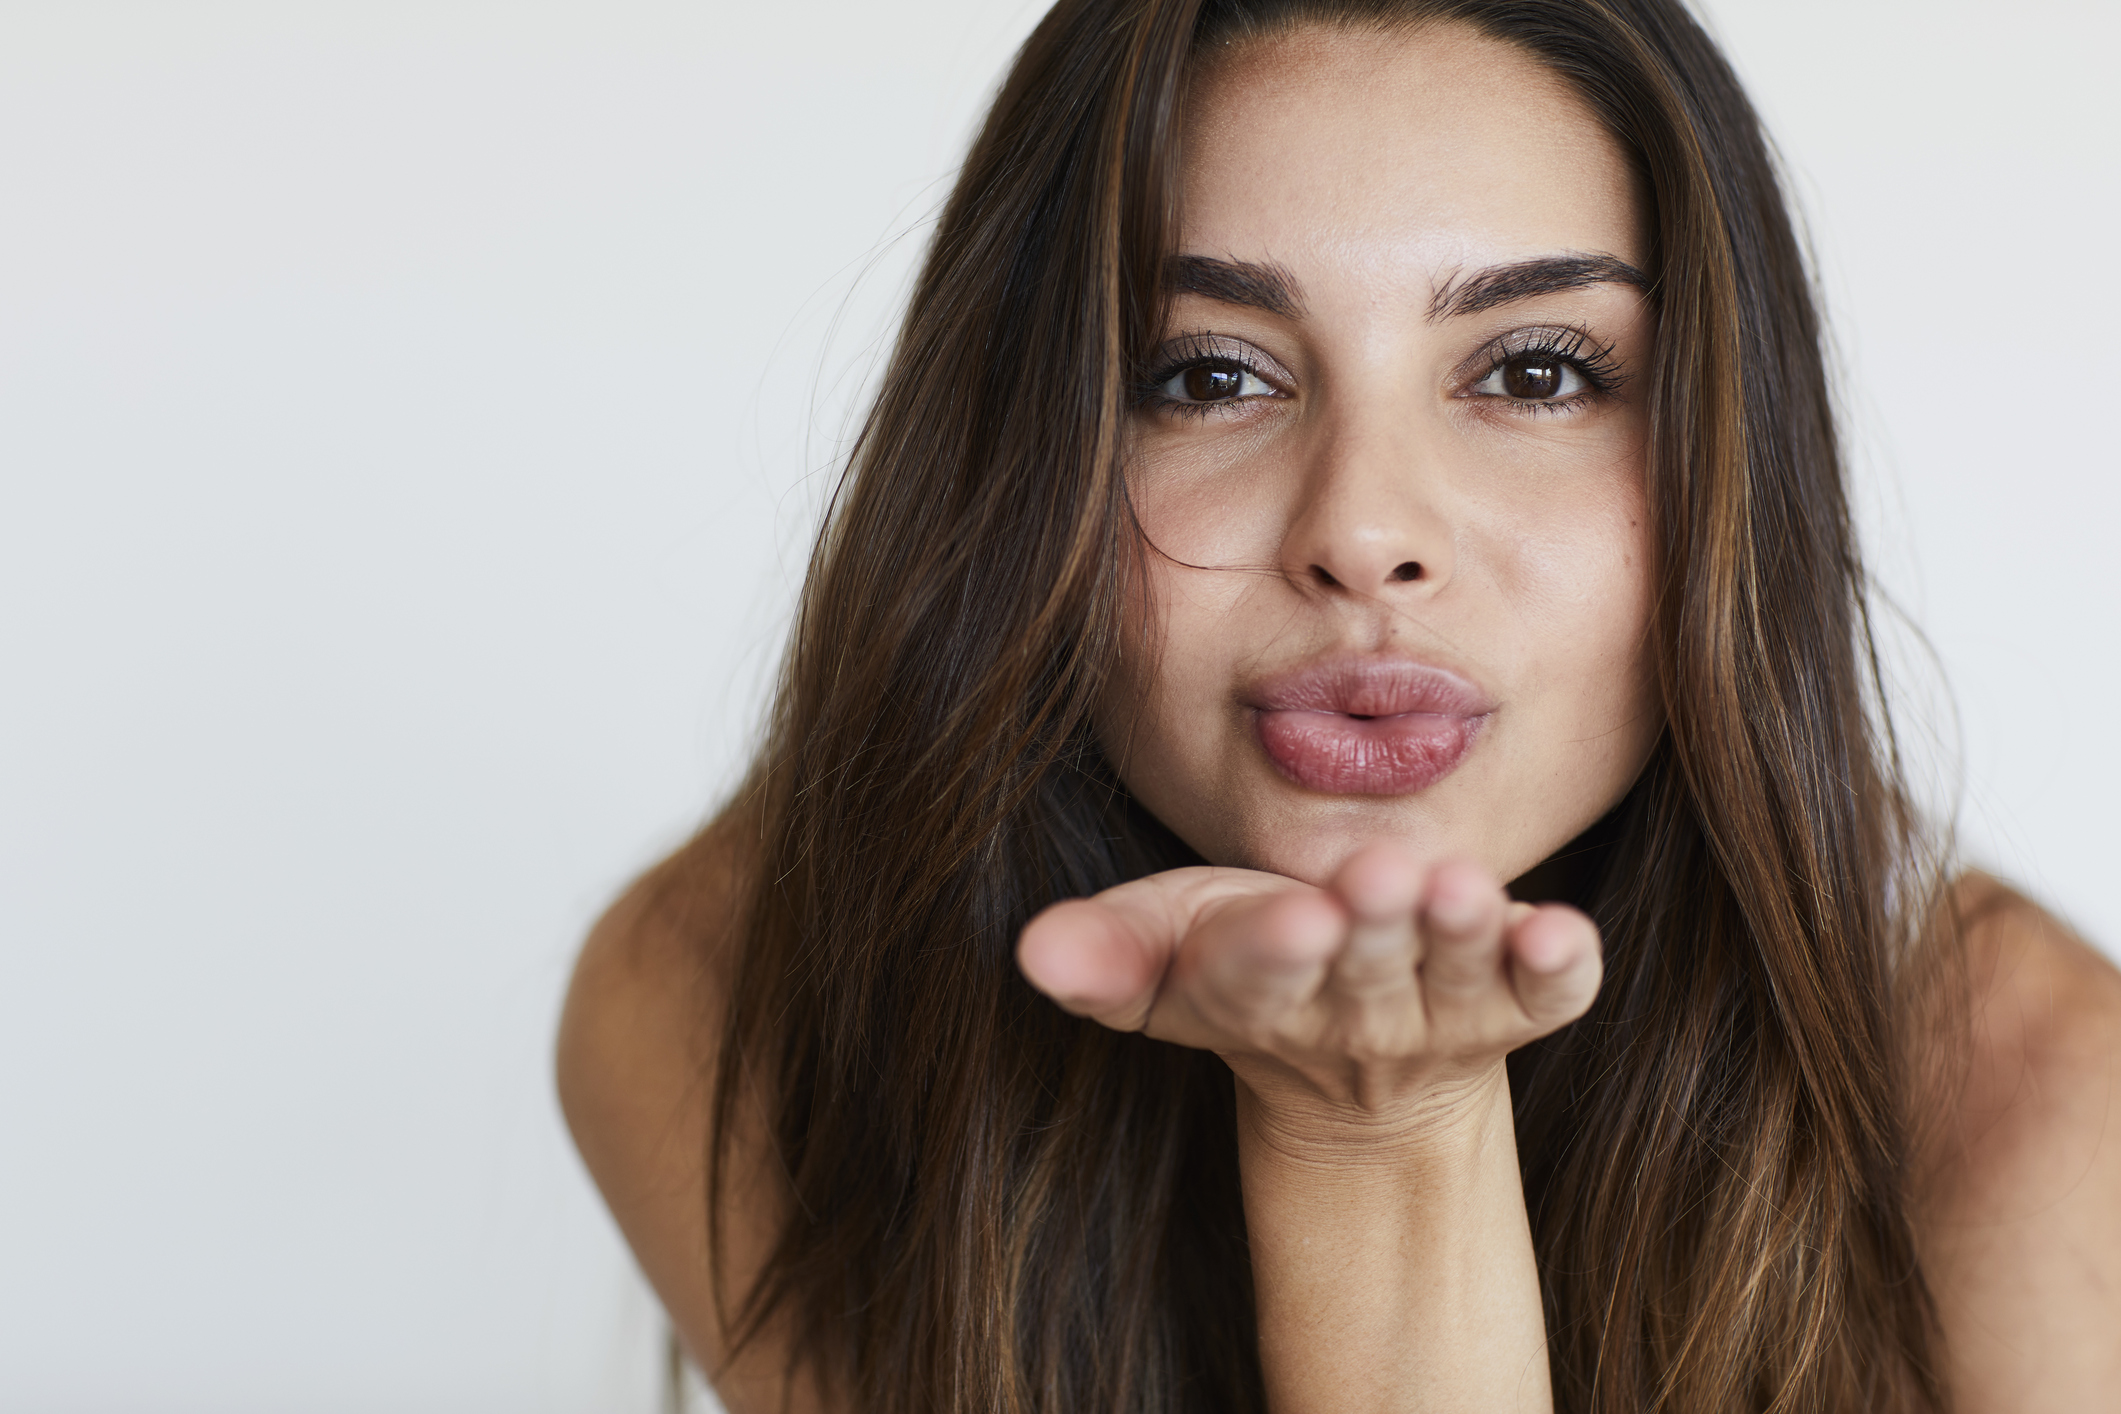 Achieve beautiful full lips with dermal fillers and fight the signs of ageing with anti wrinkle injections for an overall glowing and youthful complexion.